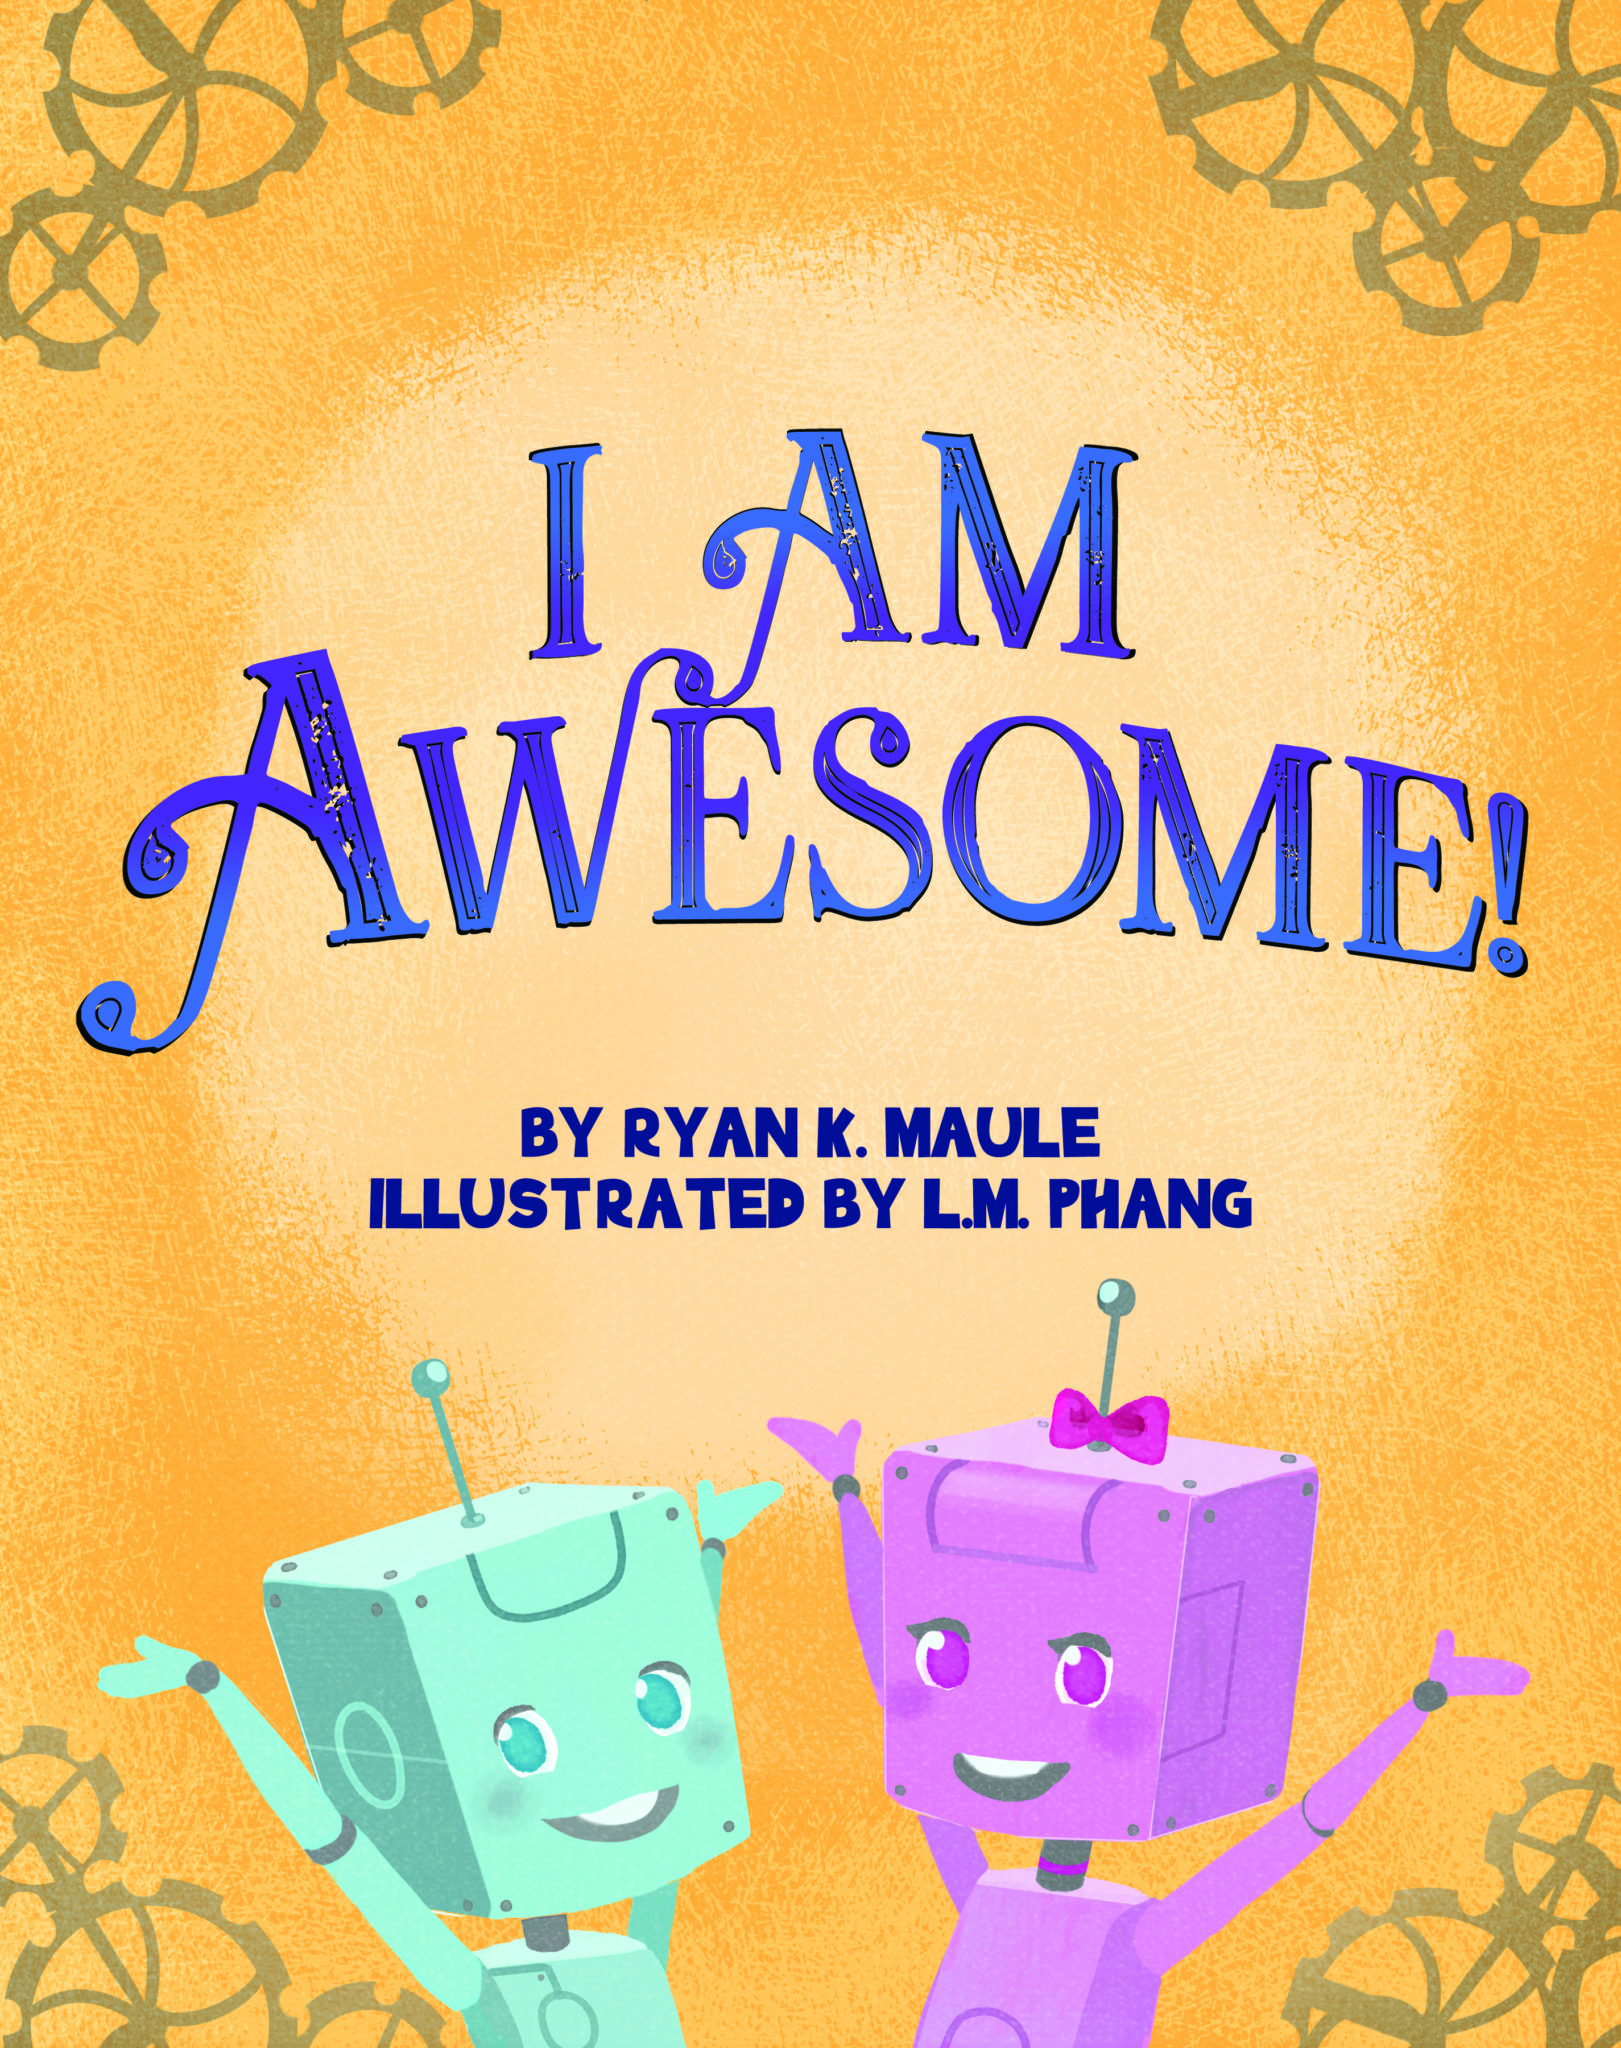 I Am Awesome by Ryan K. Maule